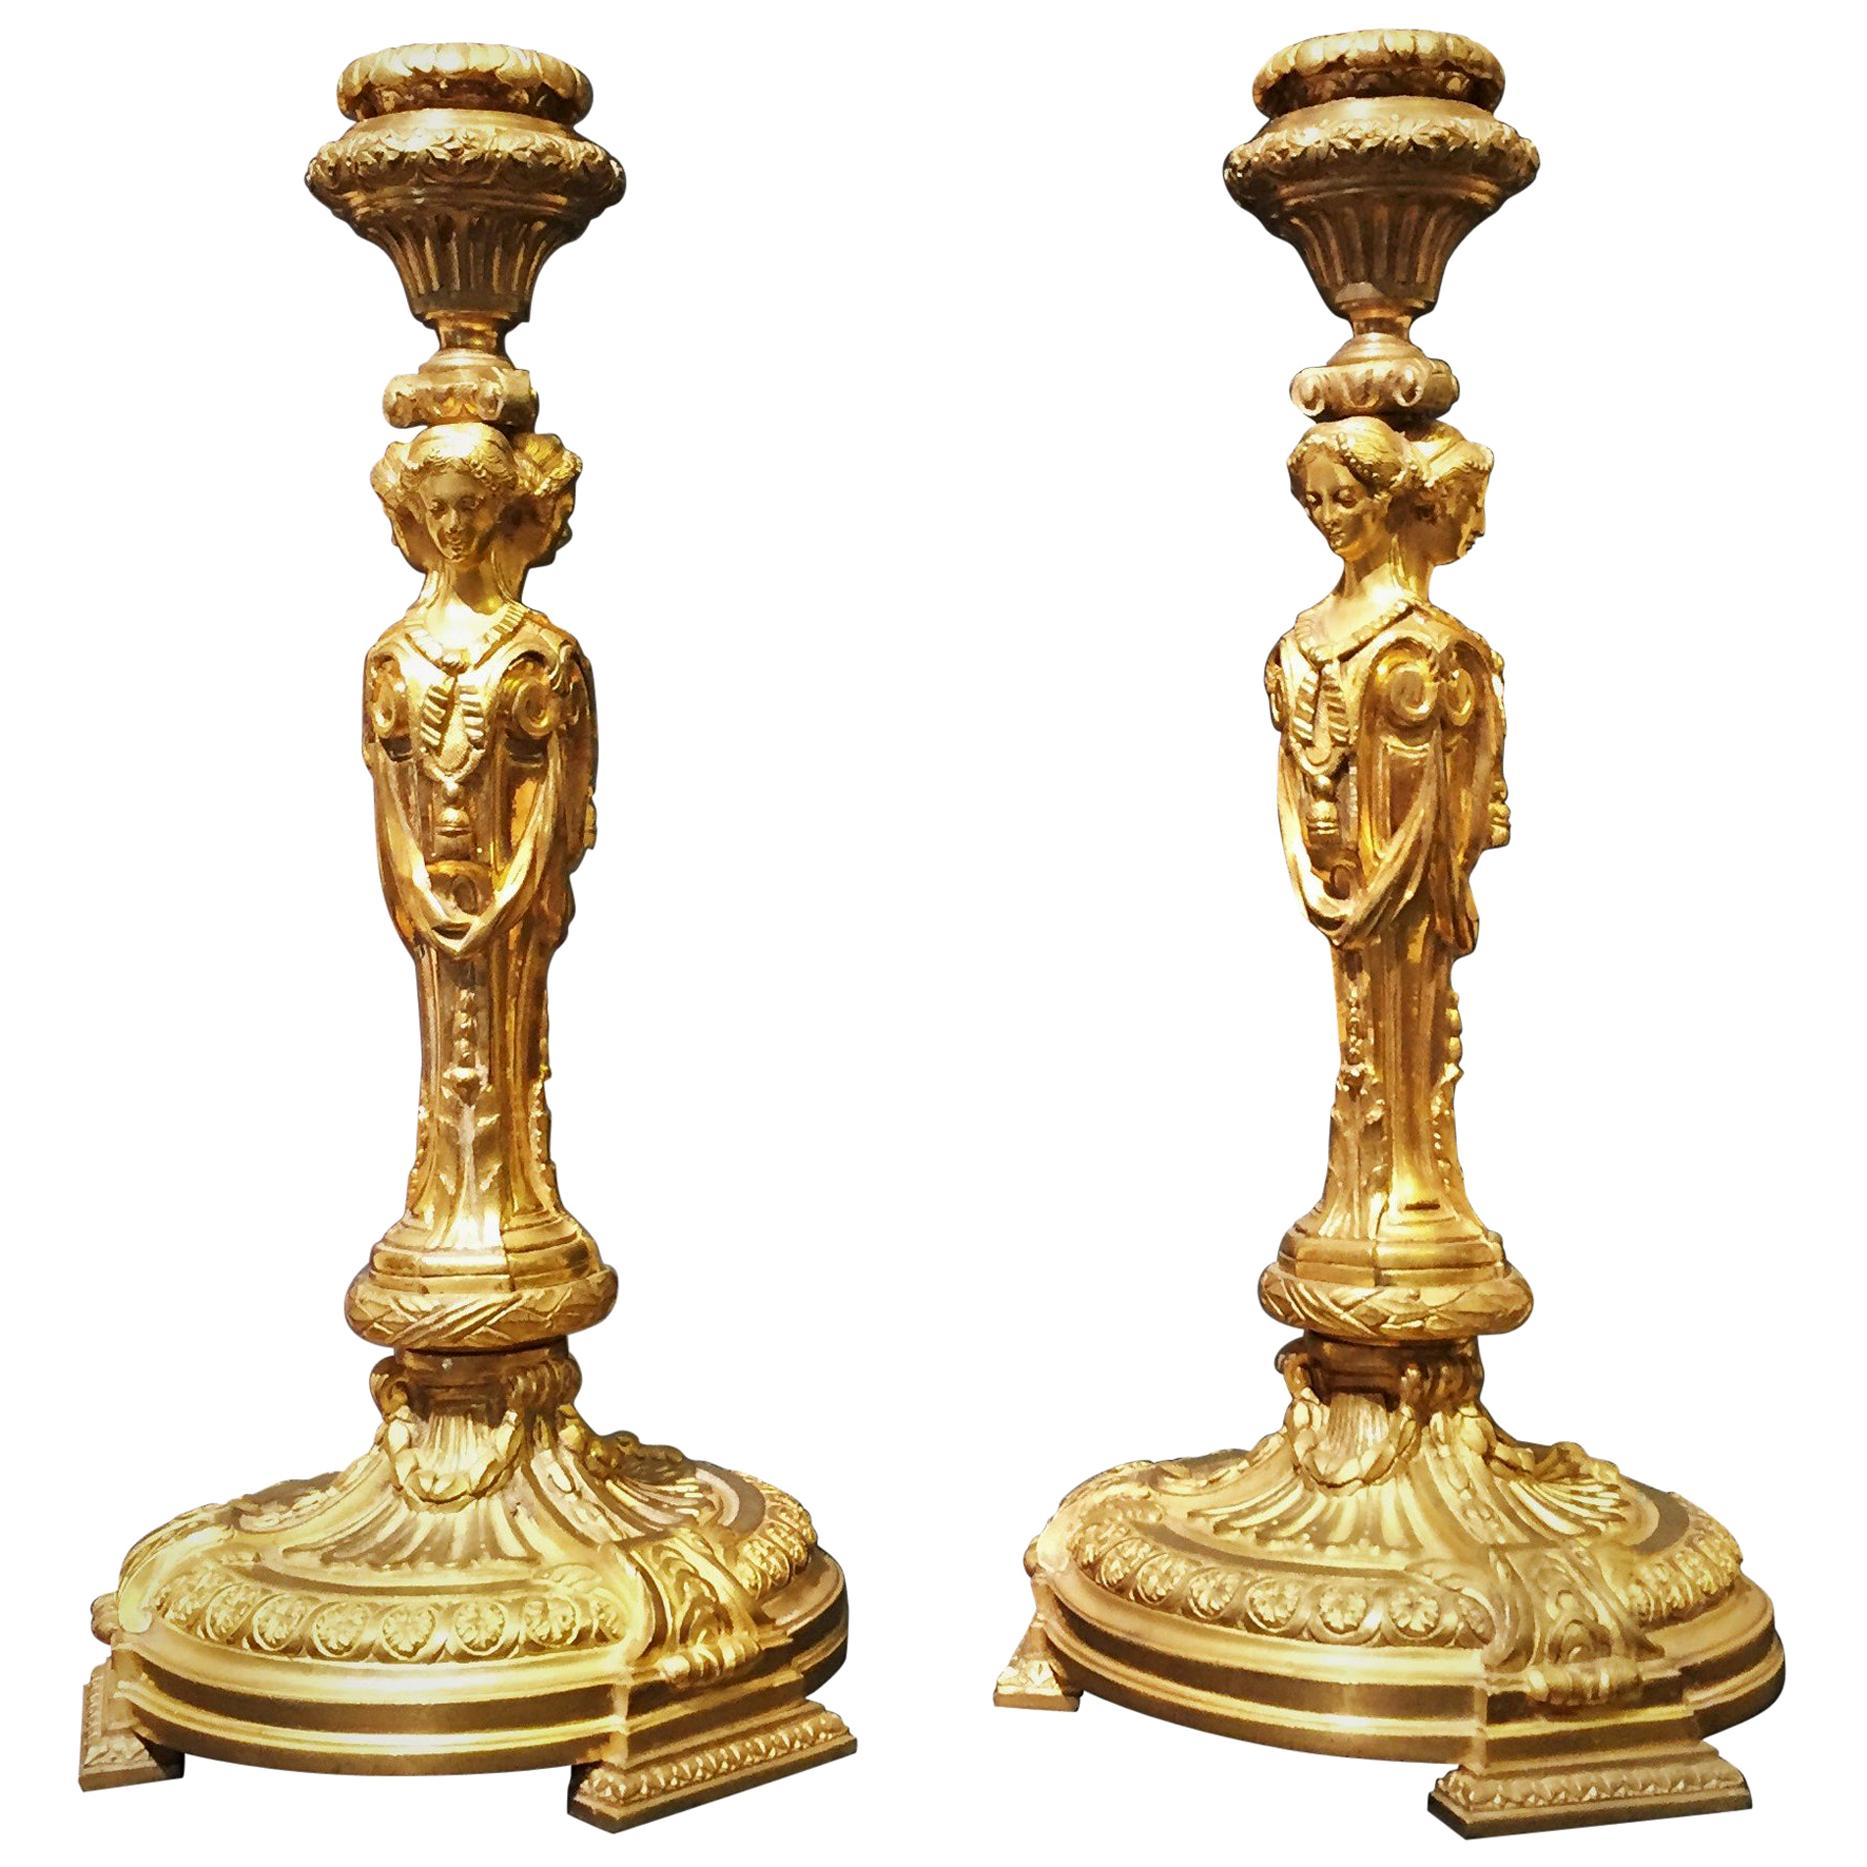 19th Century, Pair of French Git Bronze Candlesticks with Vestals